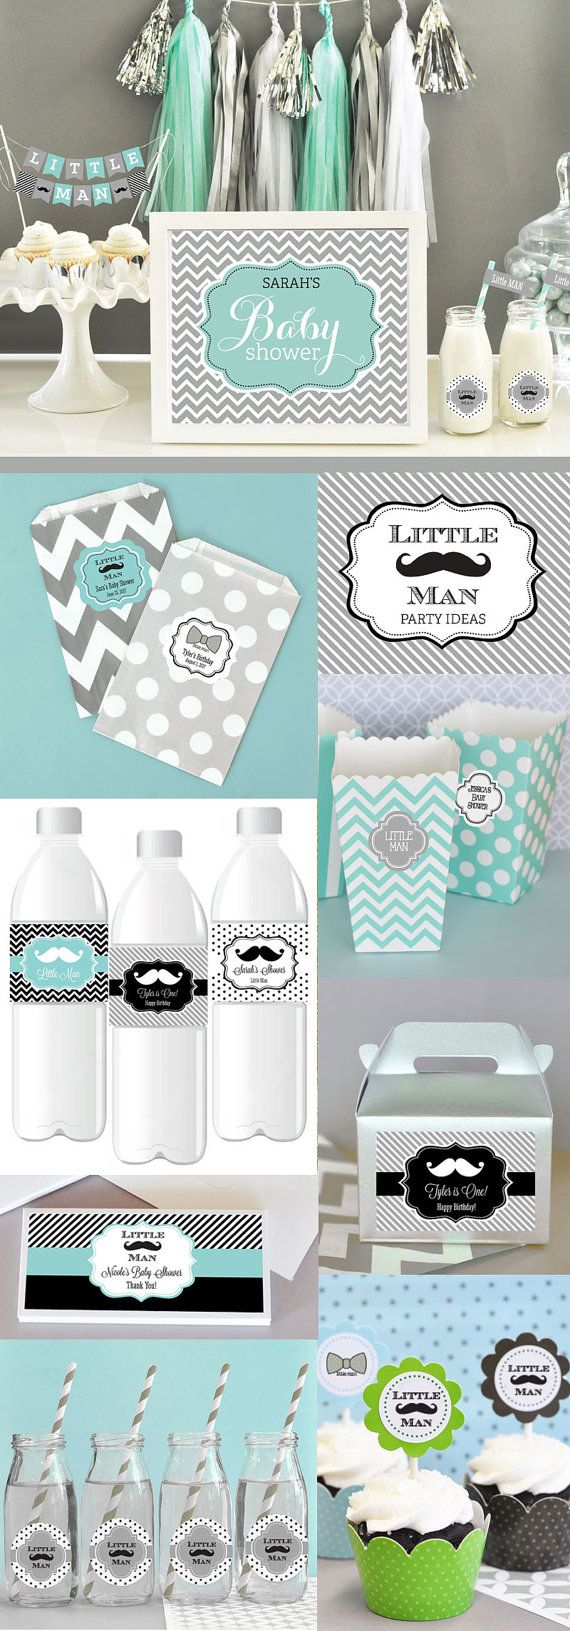 Little Man Mustache Baby Shower Decorations Sign will complete your boy baby shower decor! Centerpiece signs can be personalized to say Baby Shower or Its a Boy or any two lines of text. Signs are a perfect for a baby shower candy buffet or dessert table to welcome guests or assign areas at your event. Colored Art Prints are customizable - options include up to 2 colors, pattern, & 2 lines of text for a custom designed sign.    SIGN EXAMPLE SHOWN - Dark Grey Background Color  Aqua Blue Ce...